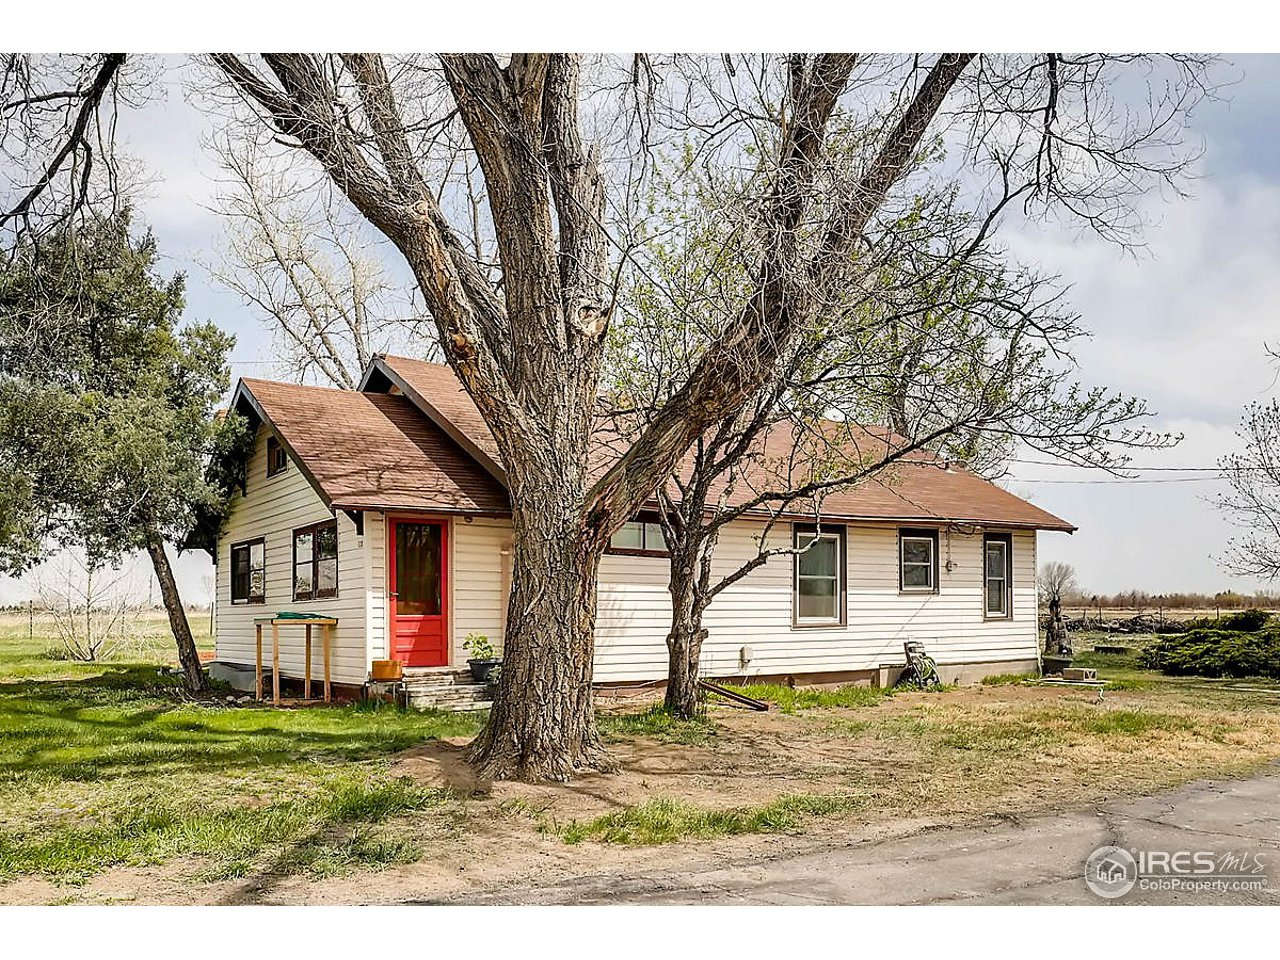 520 W County Road 16, Loveland CO 80537